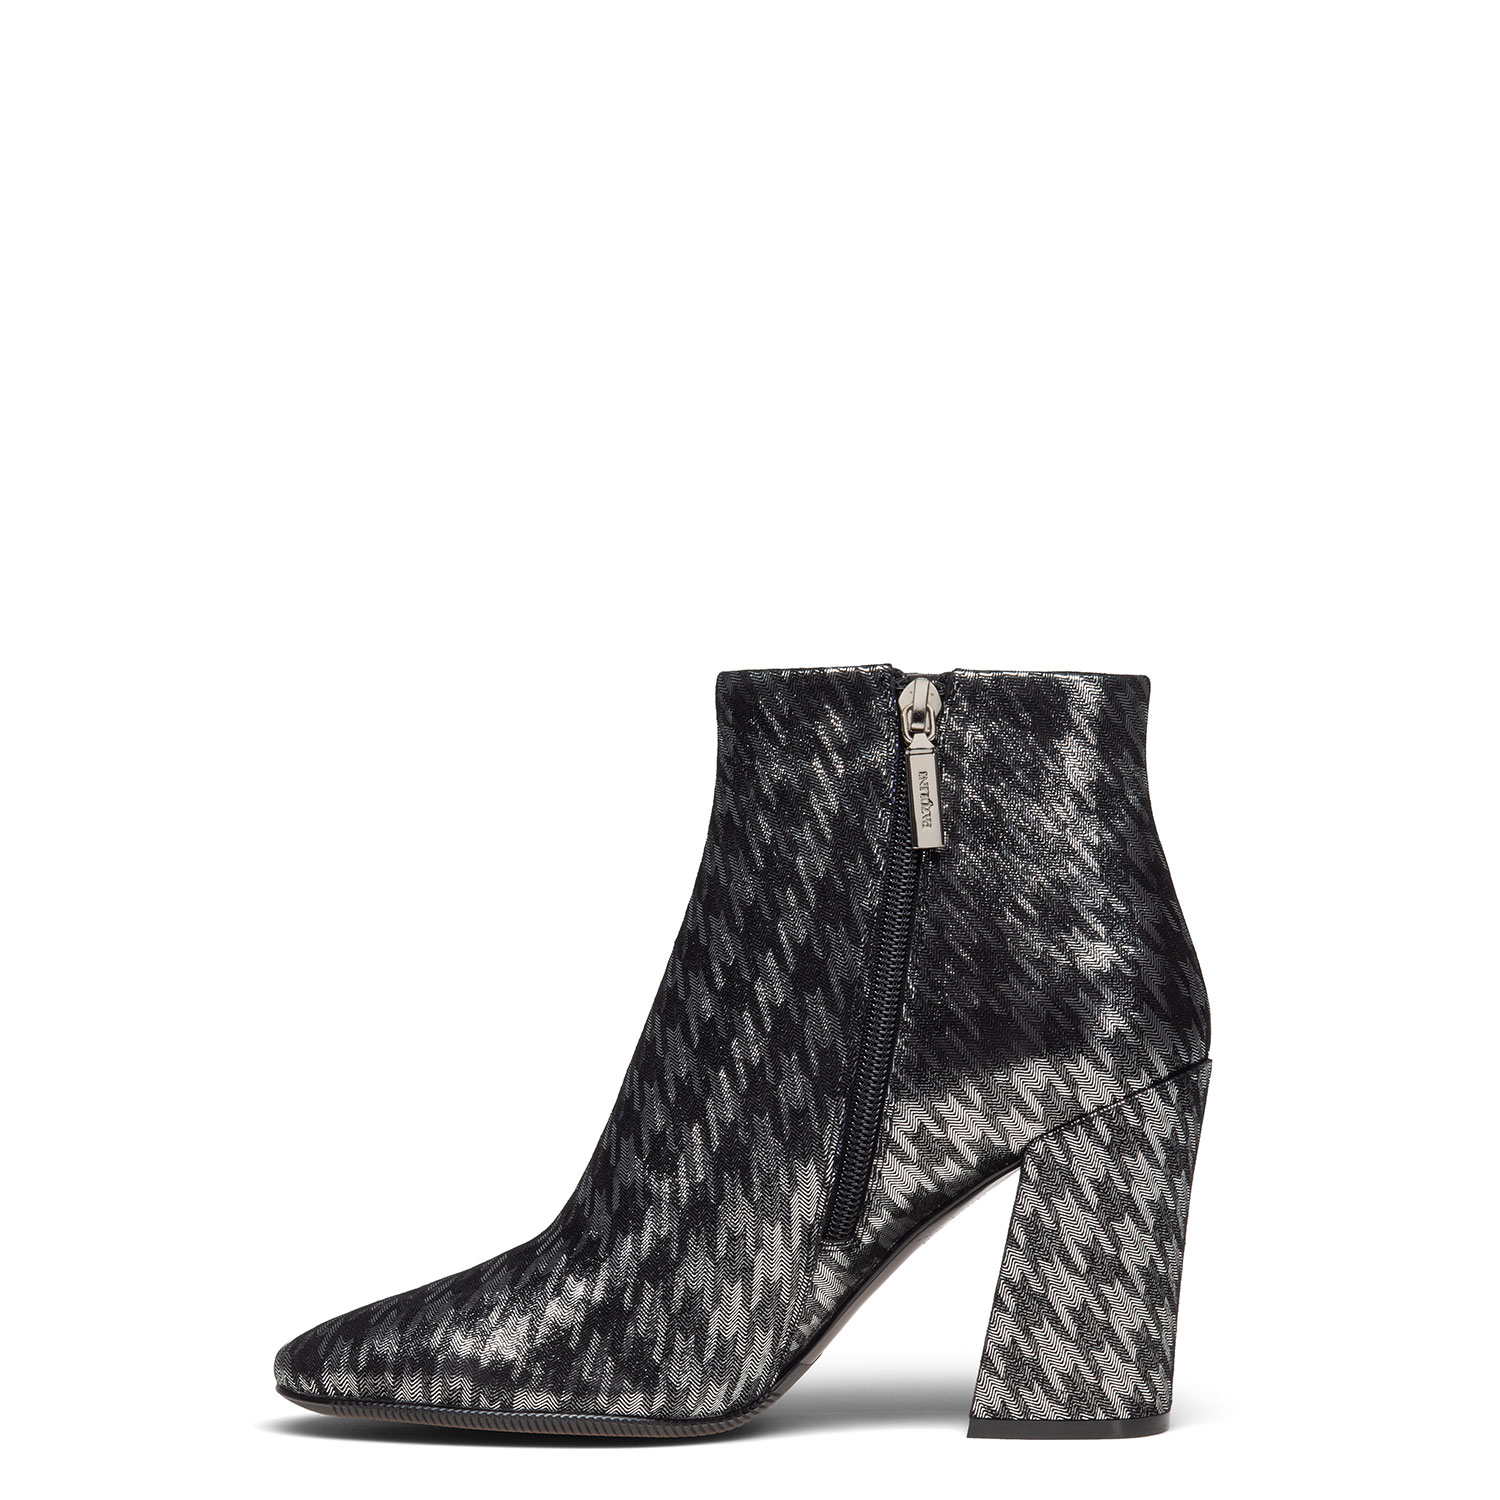 Women's ankle boots PAZOLINI FL-AZM3-19